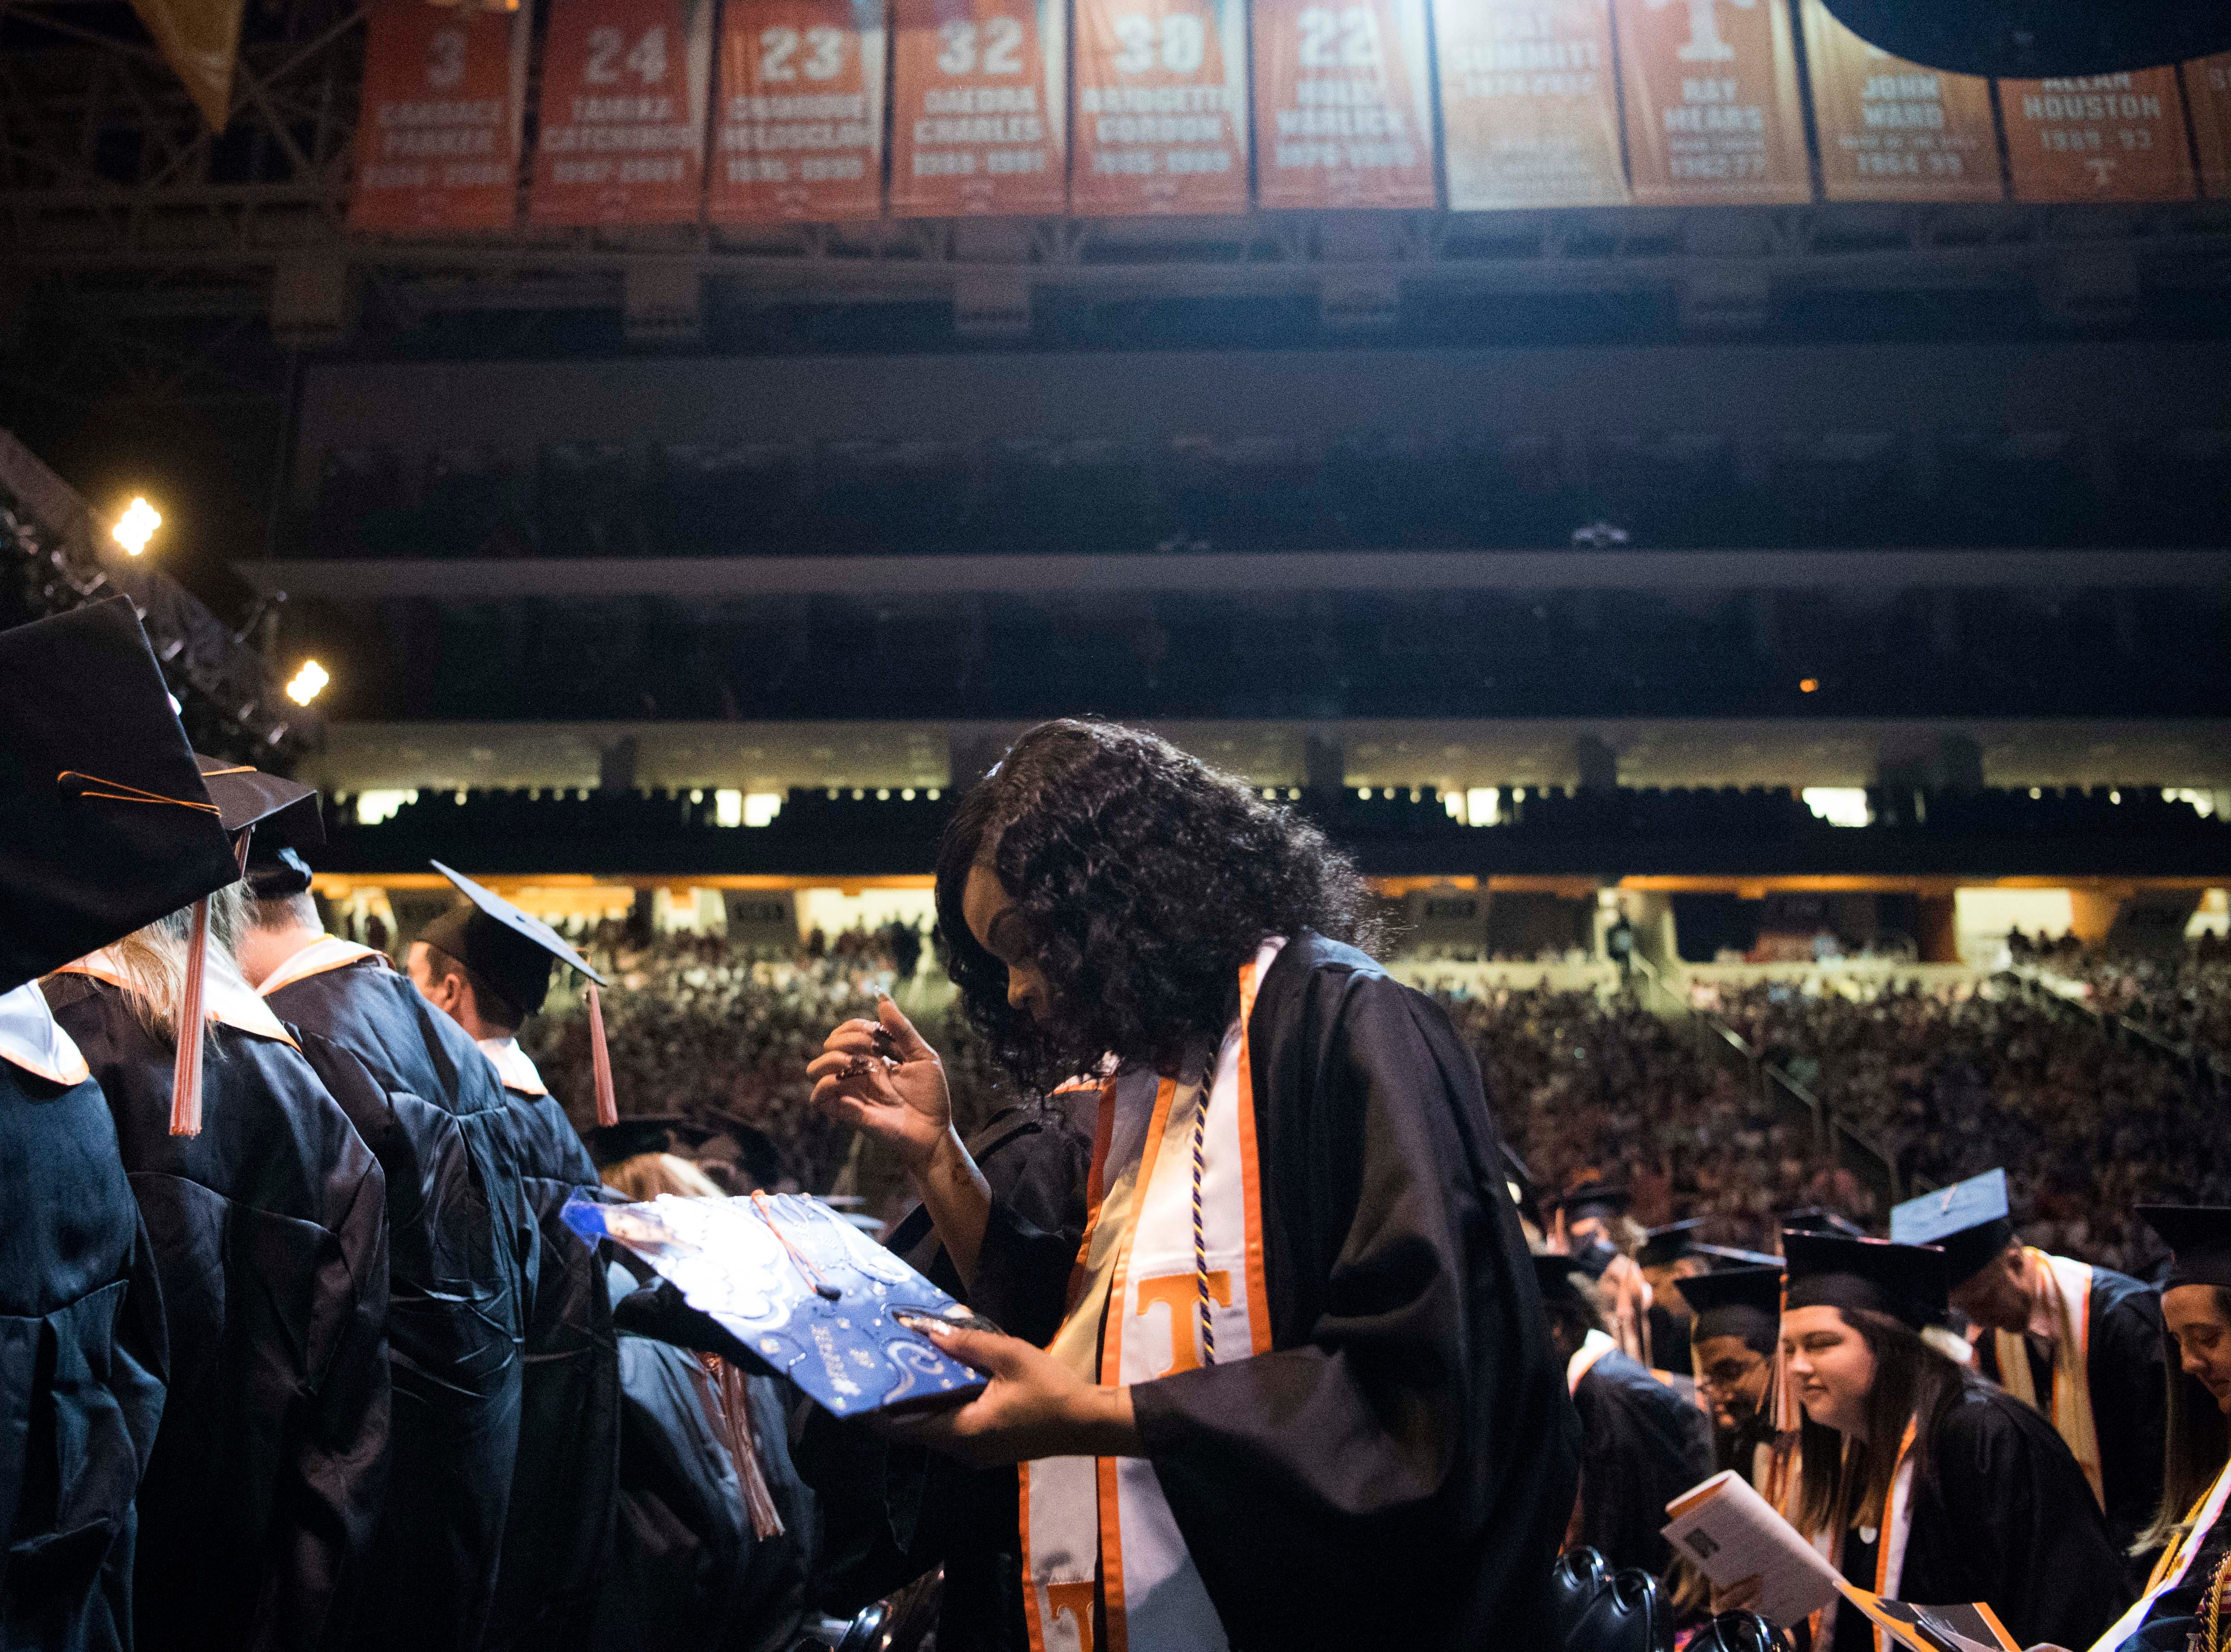 Students stand during University of Tennessee's College of Arts and Sciences commencement in Thompson-Boling arena in Knoxville, Saturday, May 11, 2019.